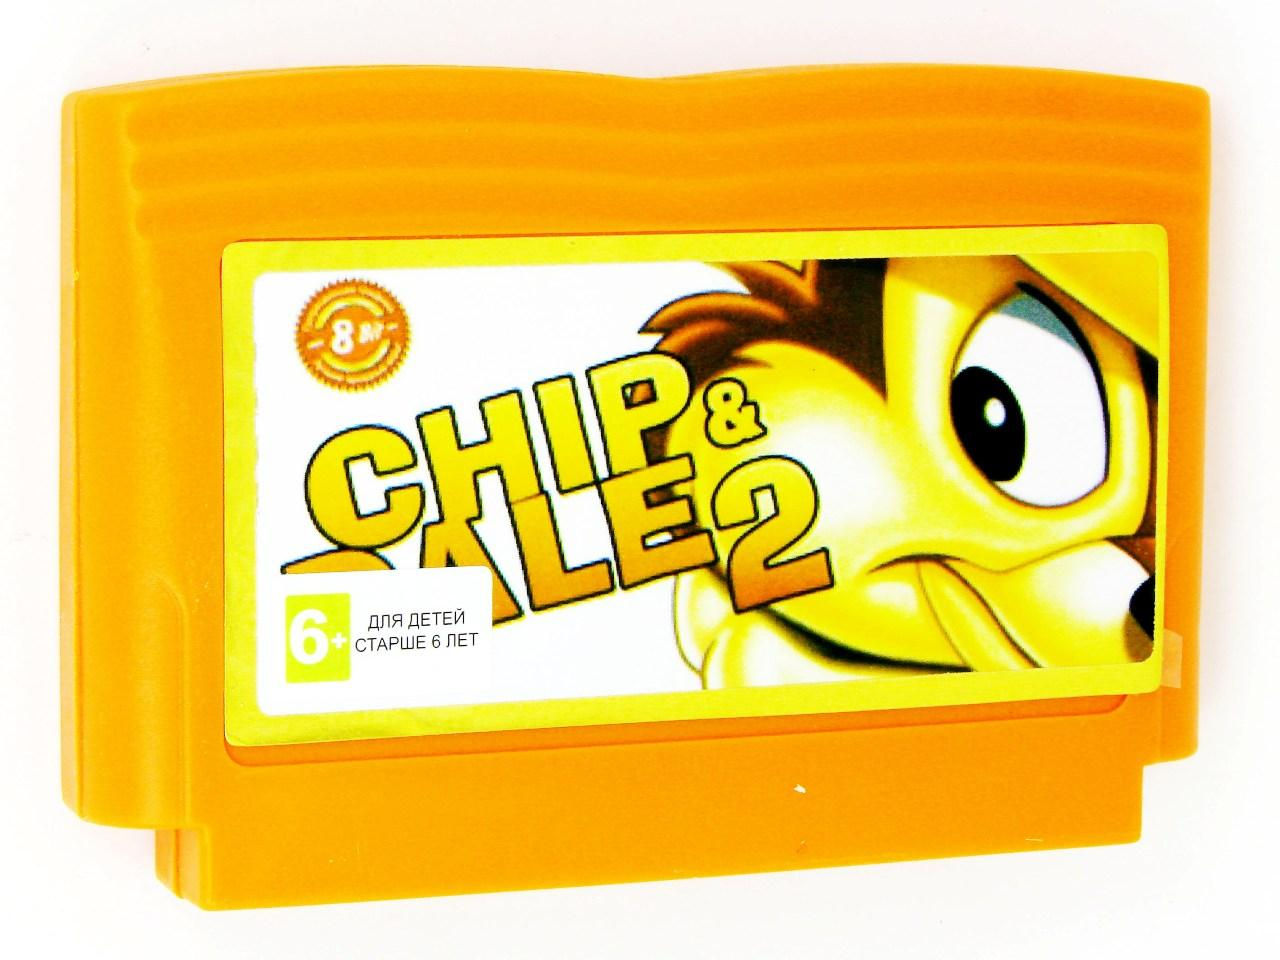 Картридж для Денди Chip & Dale 2 (Dendy)